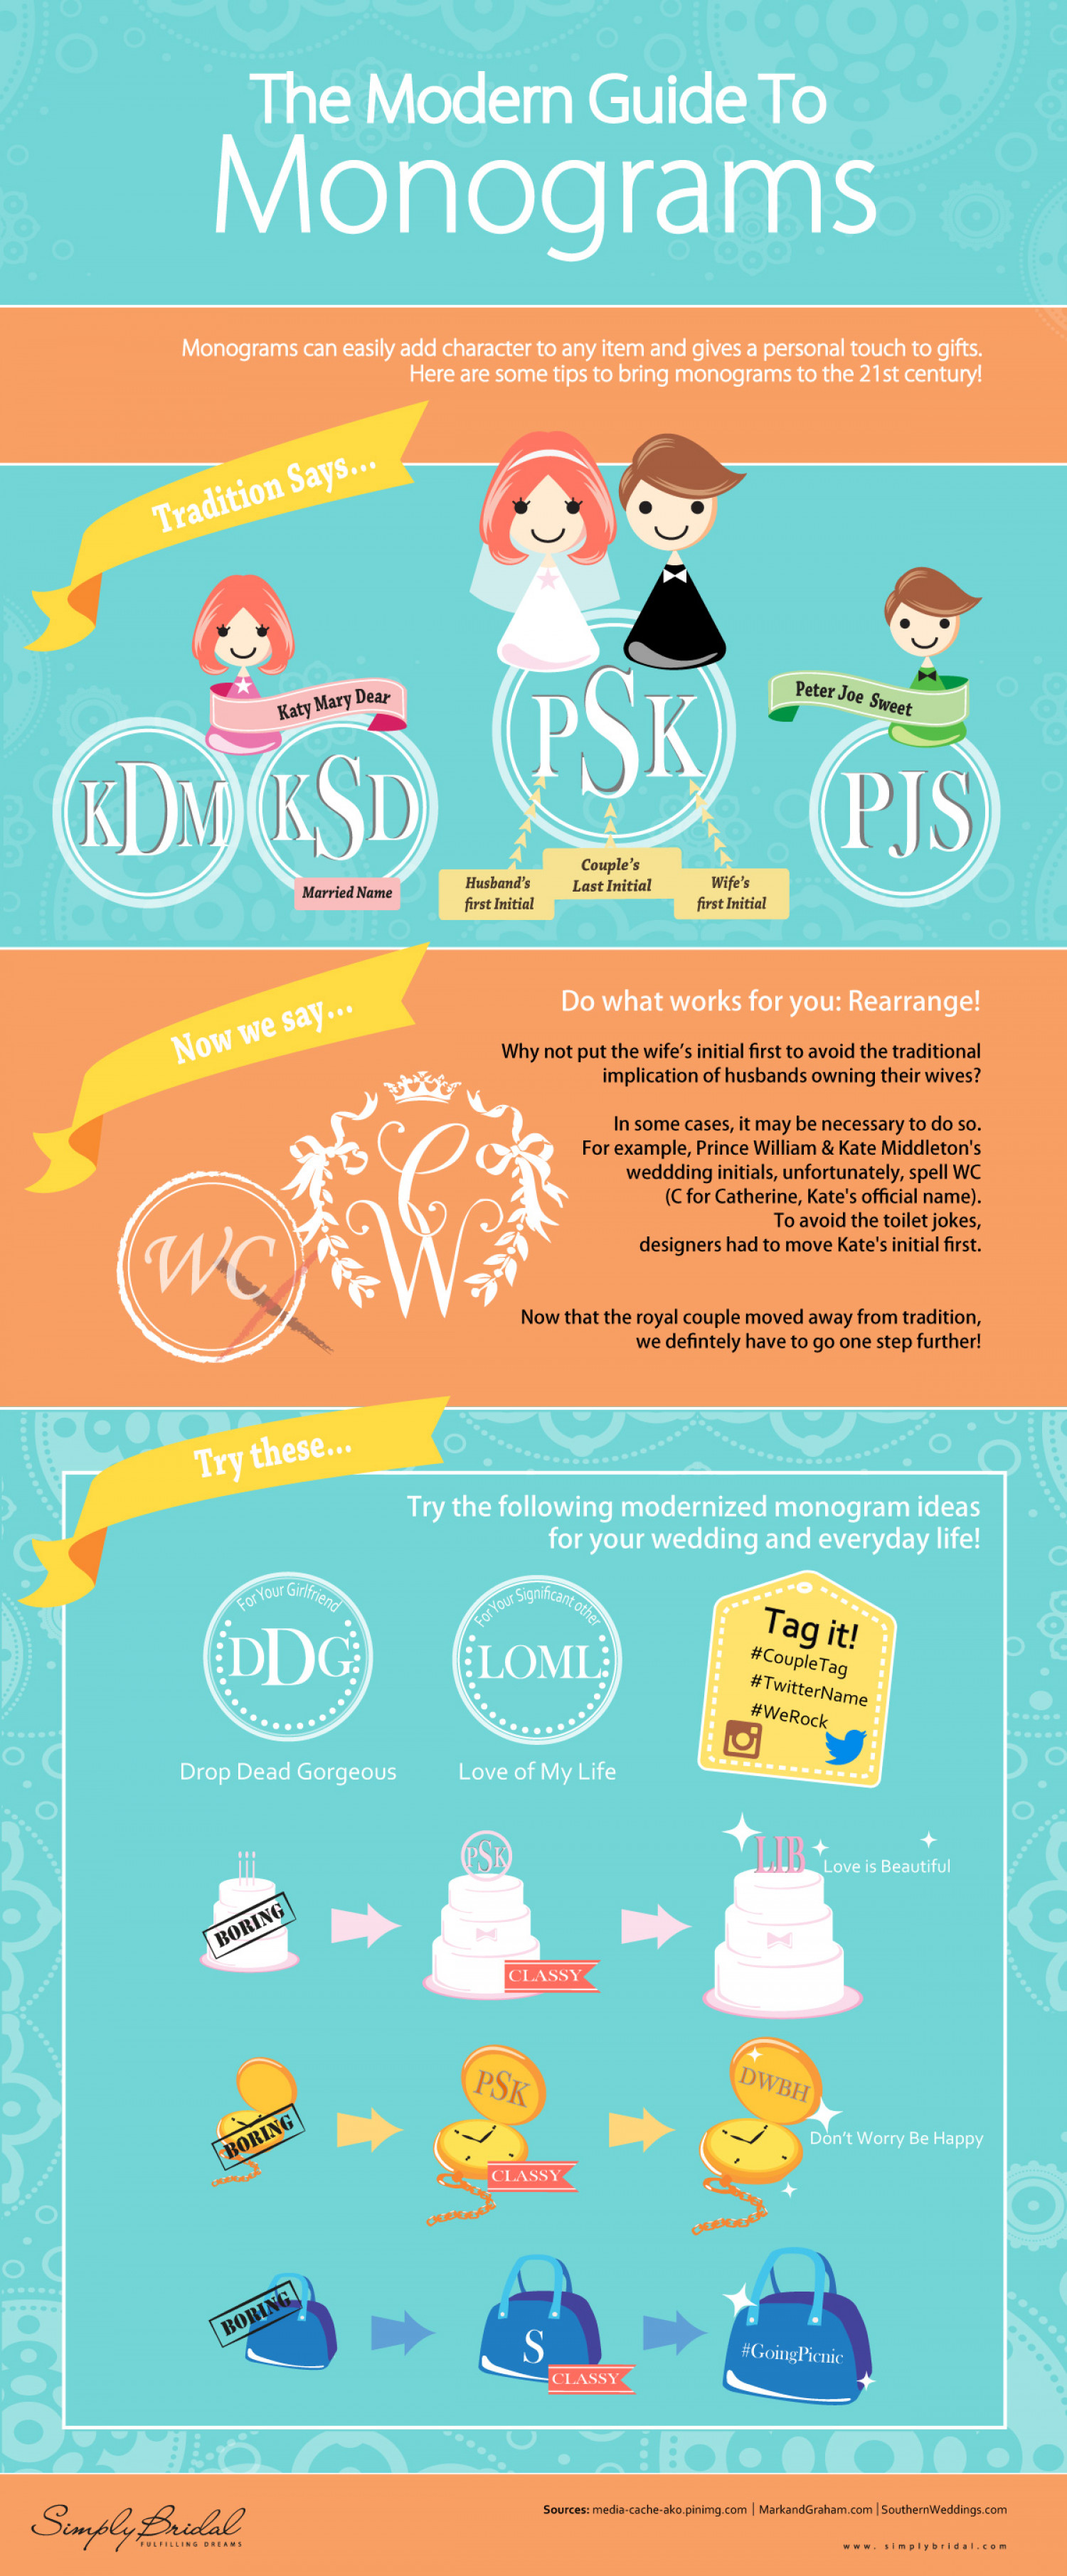 The Modern Guide to Monograms Infographic